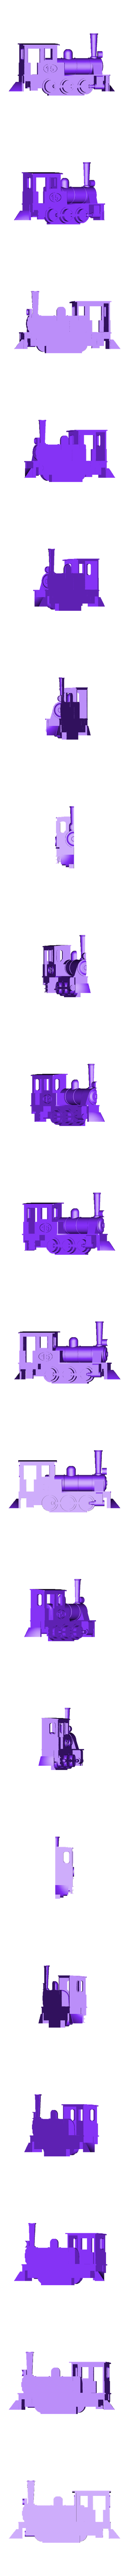 IPAD_ENGINE_RIGHT_SIDE.stl Download free STL file IPAD STAND (STEAM ENGINE) • 3D printing object, cmtm